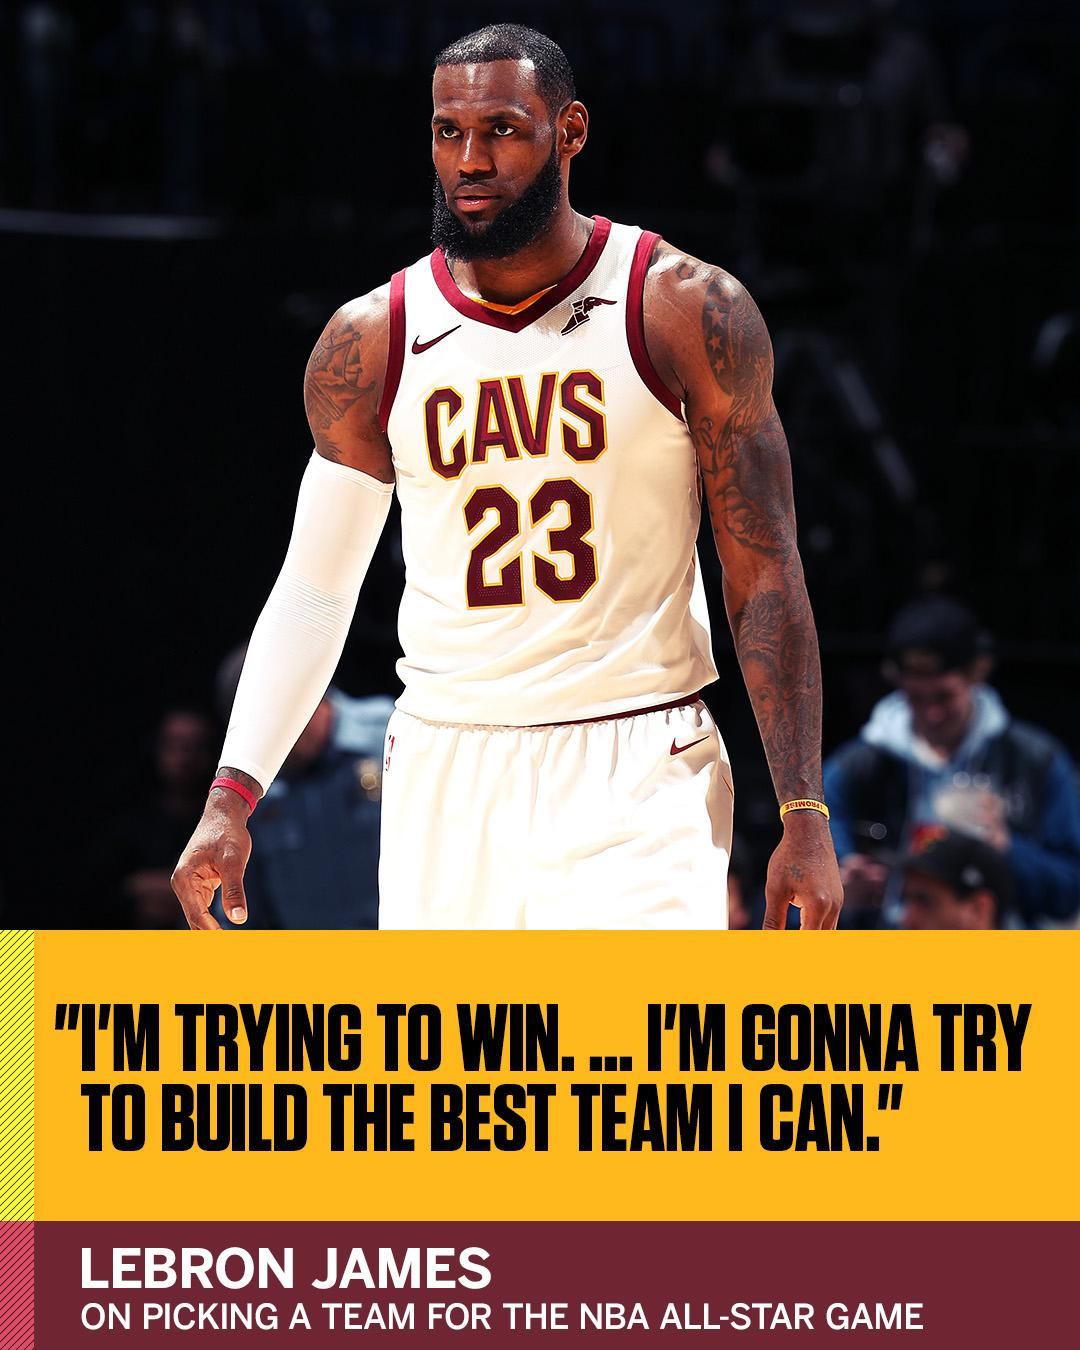 LeBron James isn't saying who he's taking first. But he is taking the NBA All-Star Game very seriously. https://t.co/WFBfM2naDB